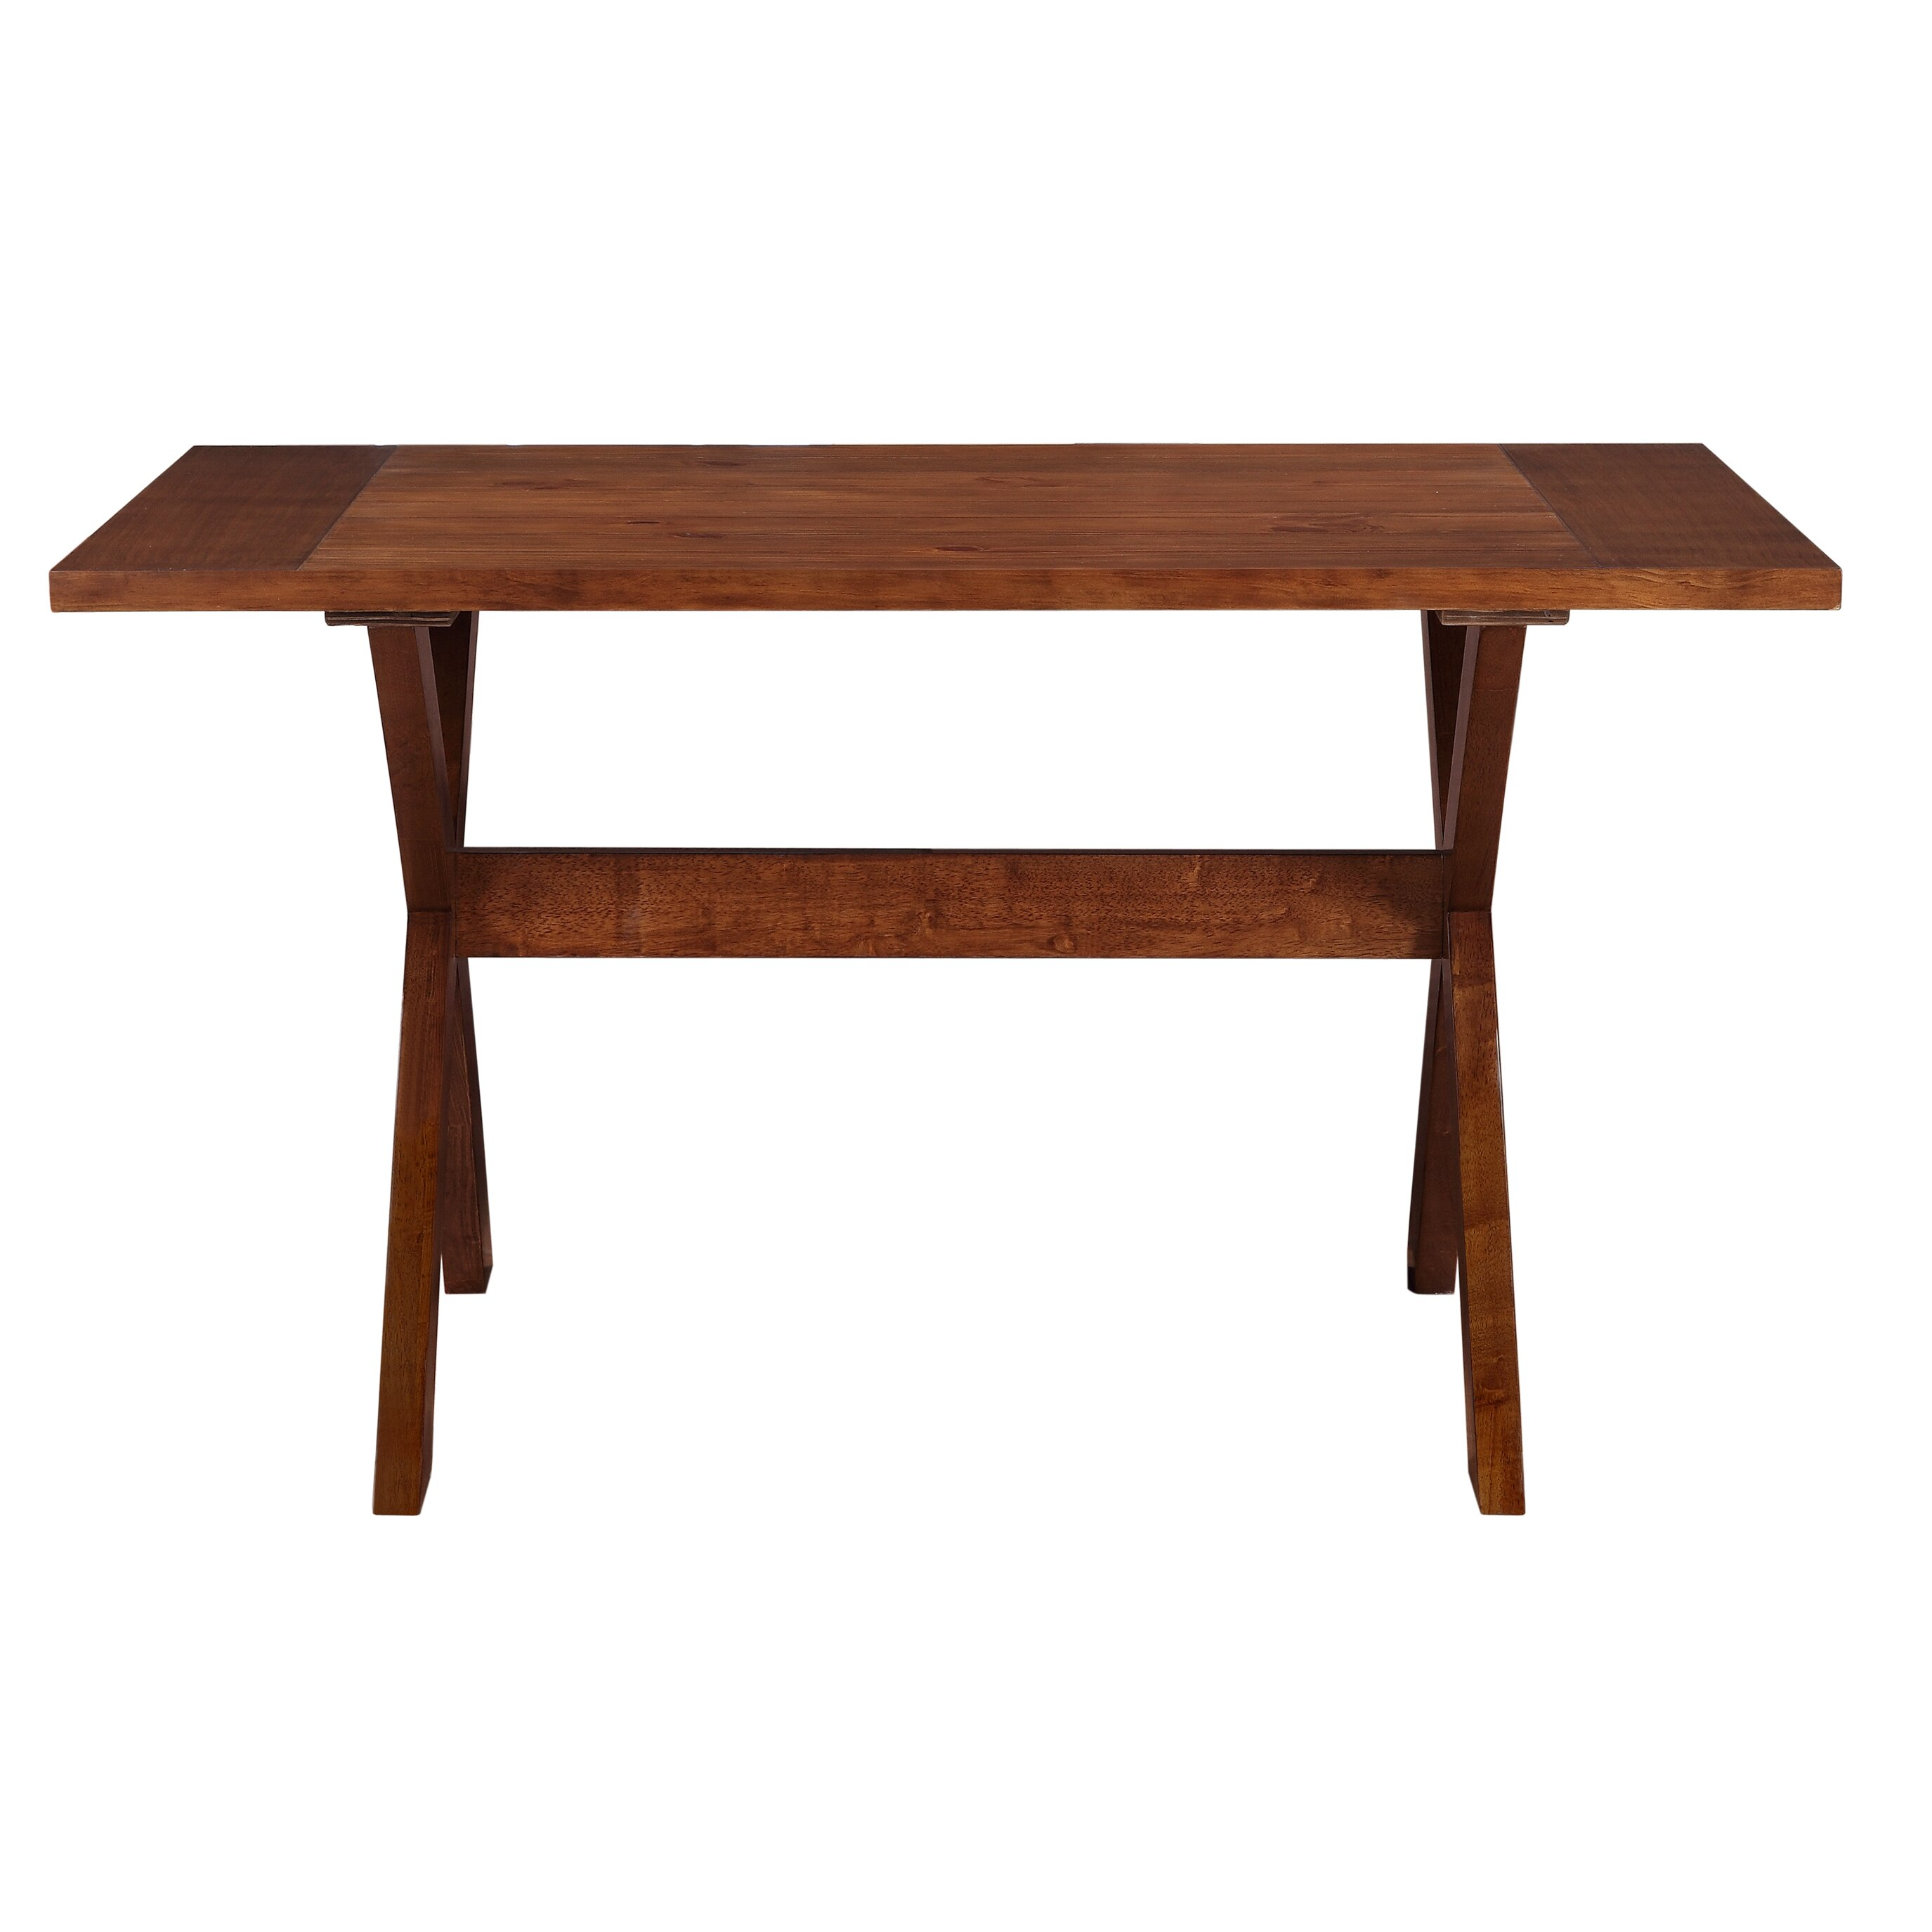 Dorel living trestle dining table reviews wayfair Trestle dining table